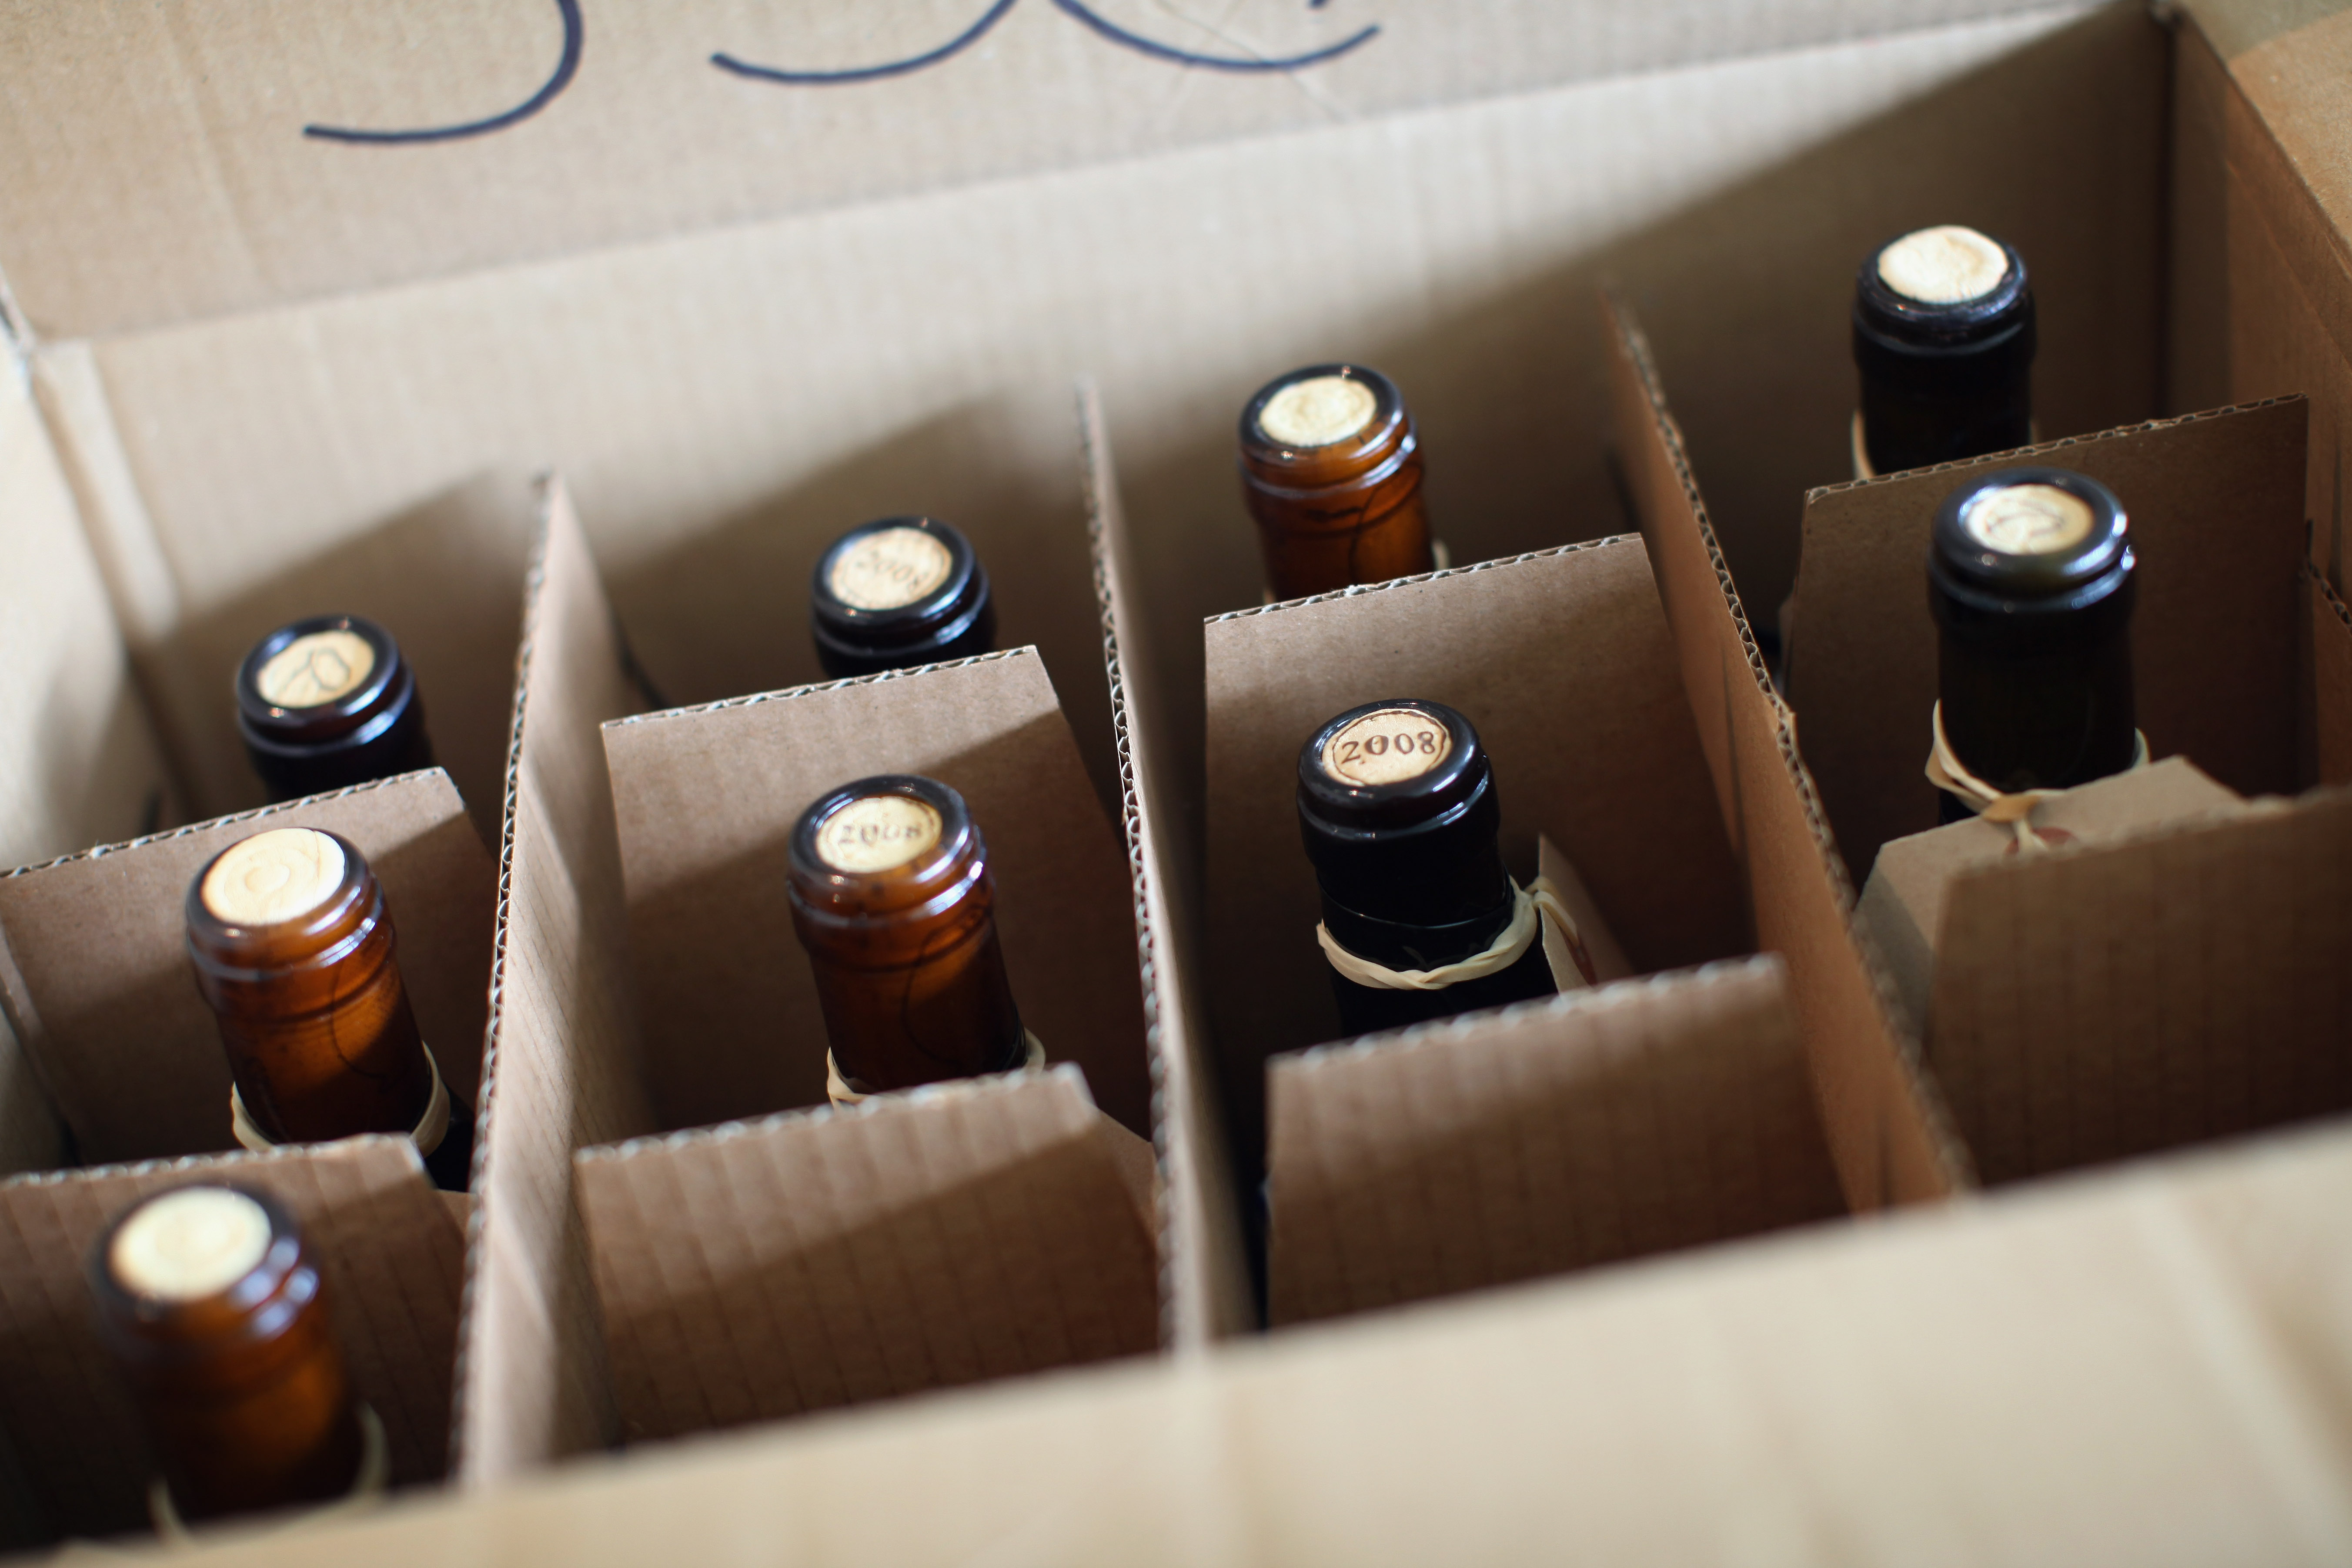 A recent change allows Marines to ship their alcoholic beverages with their household goods ― like other military members can do. (Dan Kitwood/Getty Images)